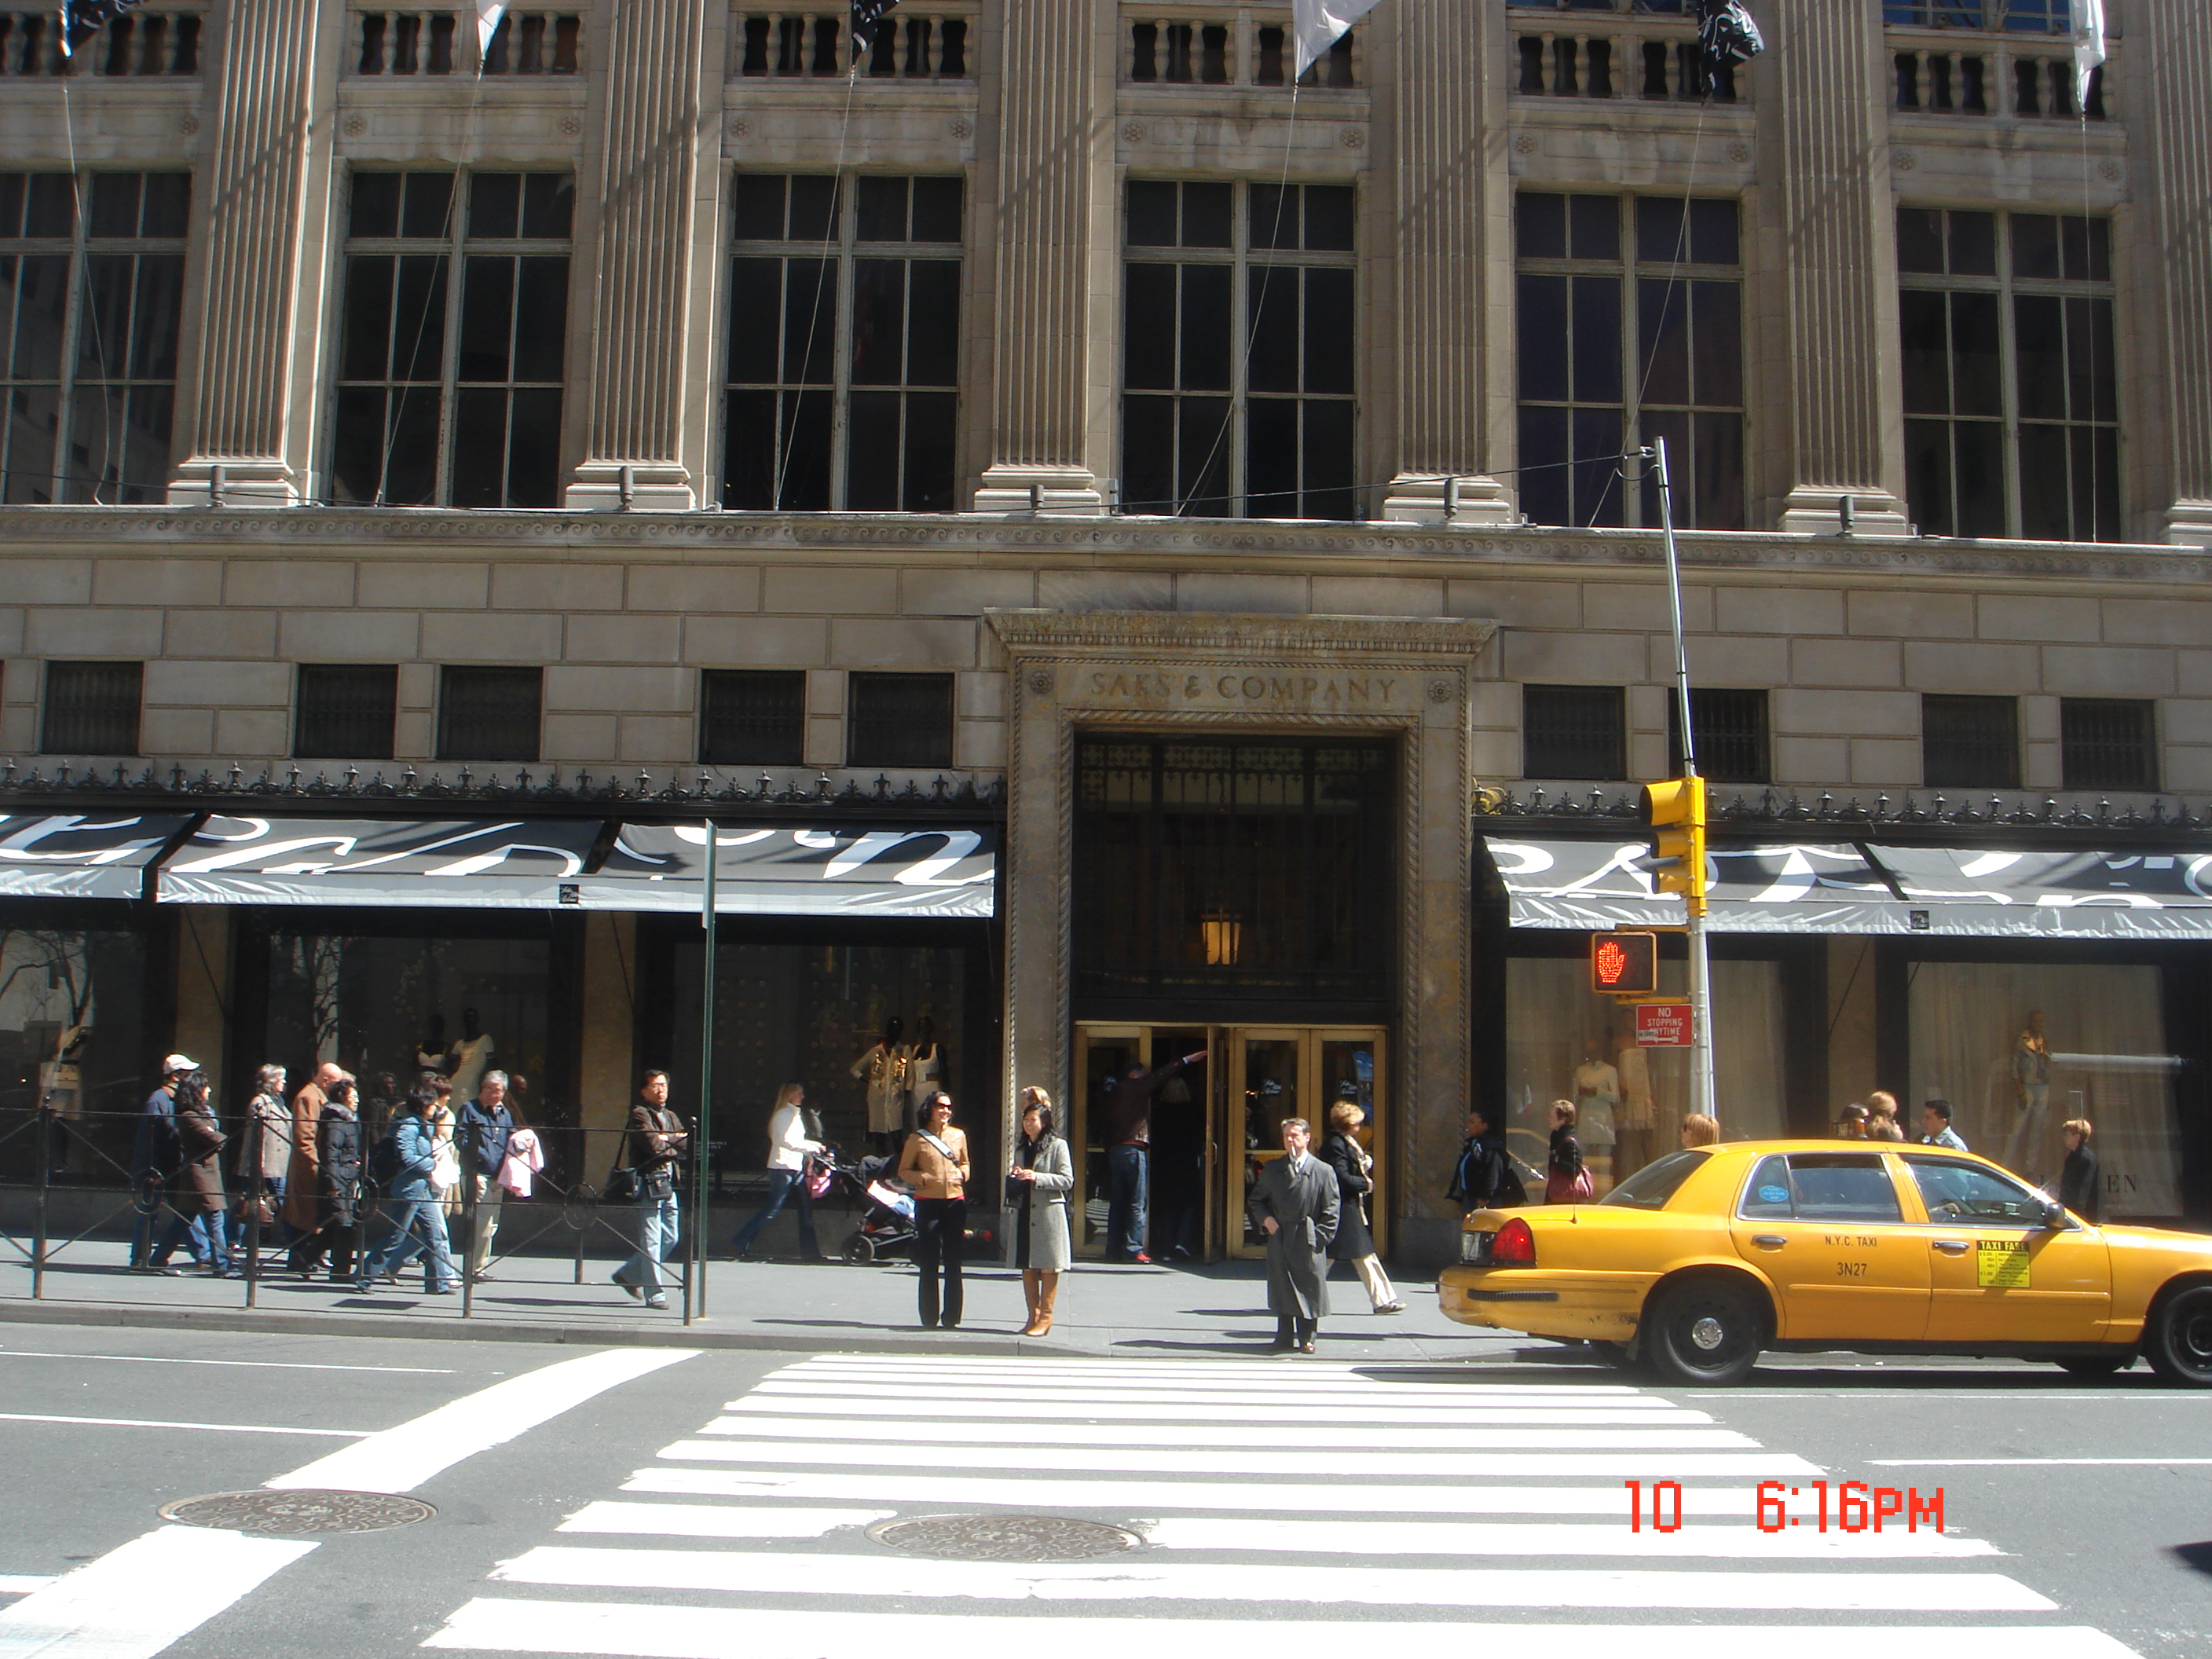 Saks Fifth Avenue is an American chain of luxury department stores owned by the oldest commercial corporation in North America, the Hudson's Bay Company. Its main flagship store is located on Fifth Avenue in Midtown Manhattan, New York City.